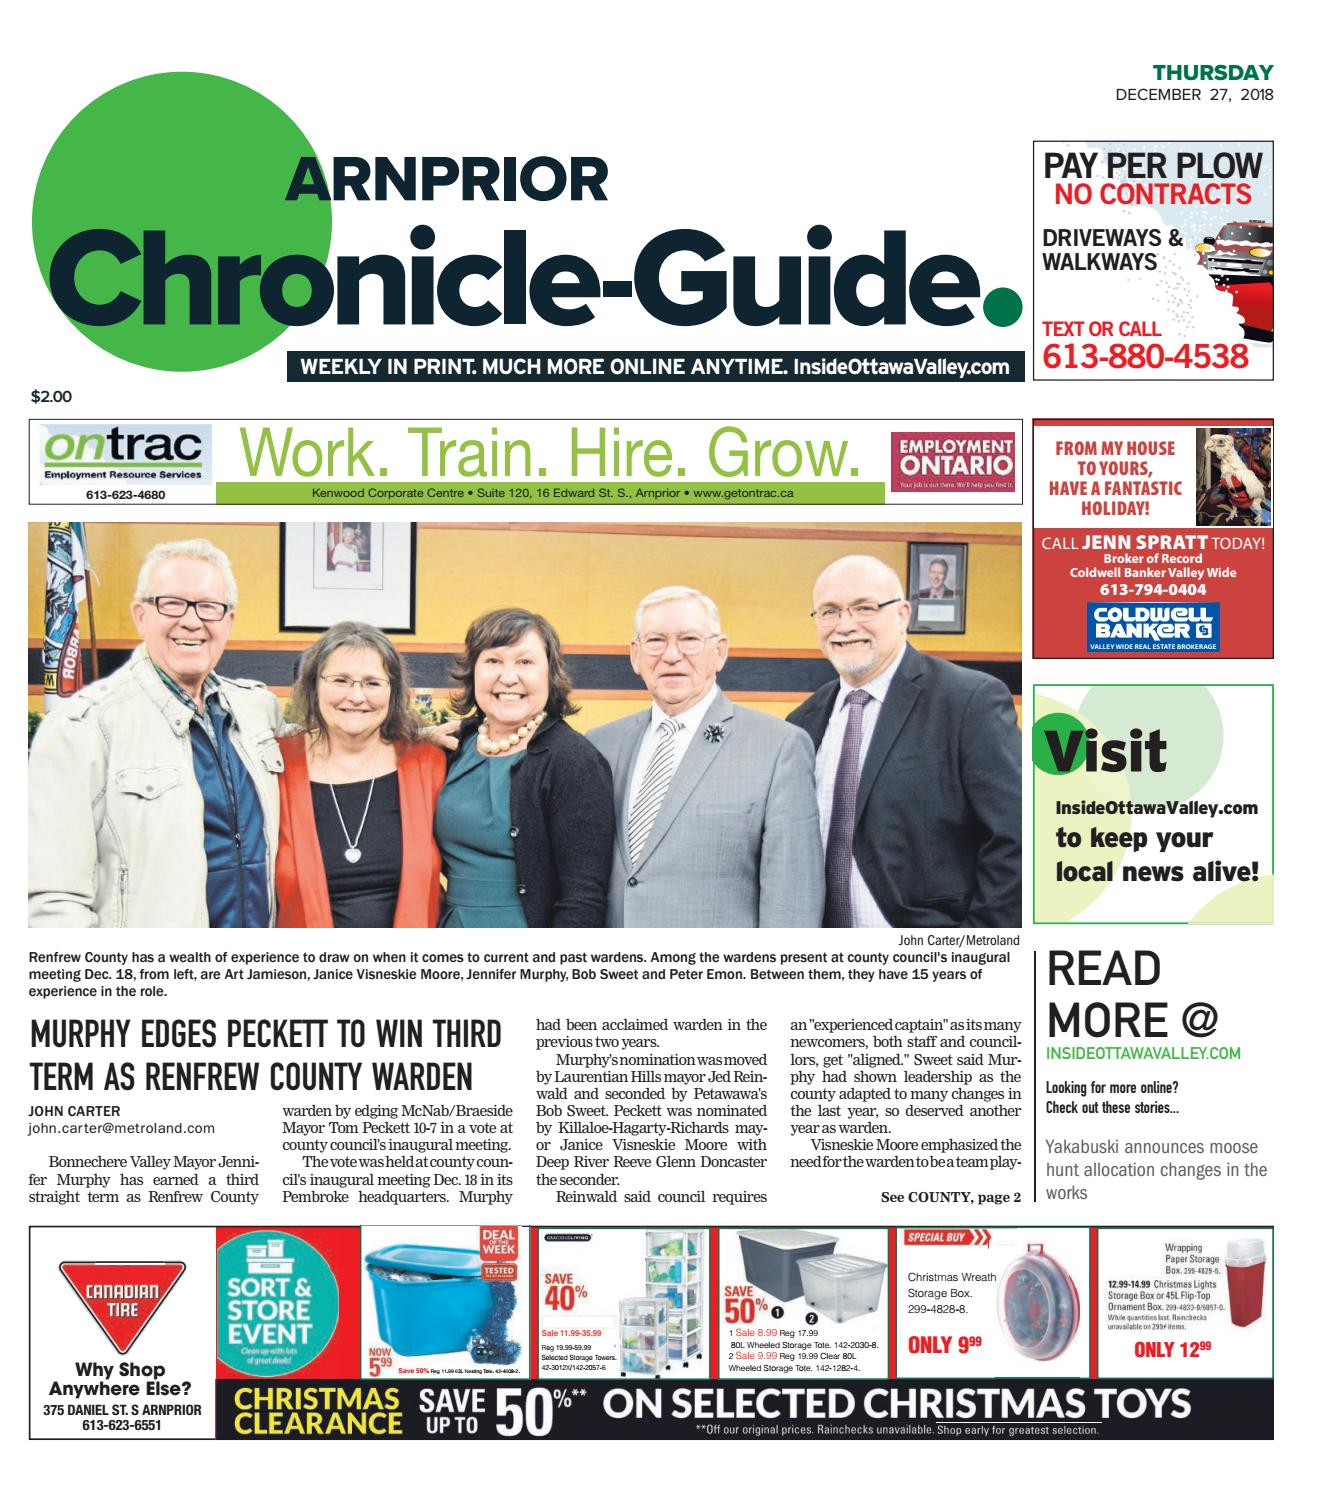 ARN A 20181227 by Metroland East - Arnprior Chronicle-Guide - issuu 3fc5a43098f71